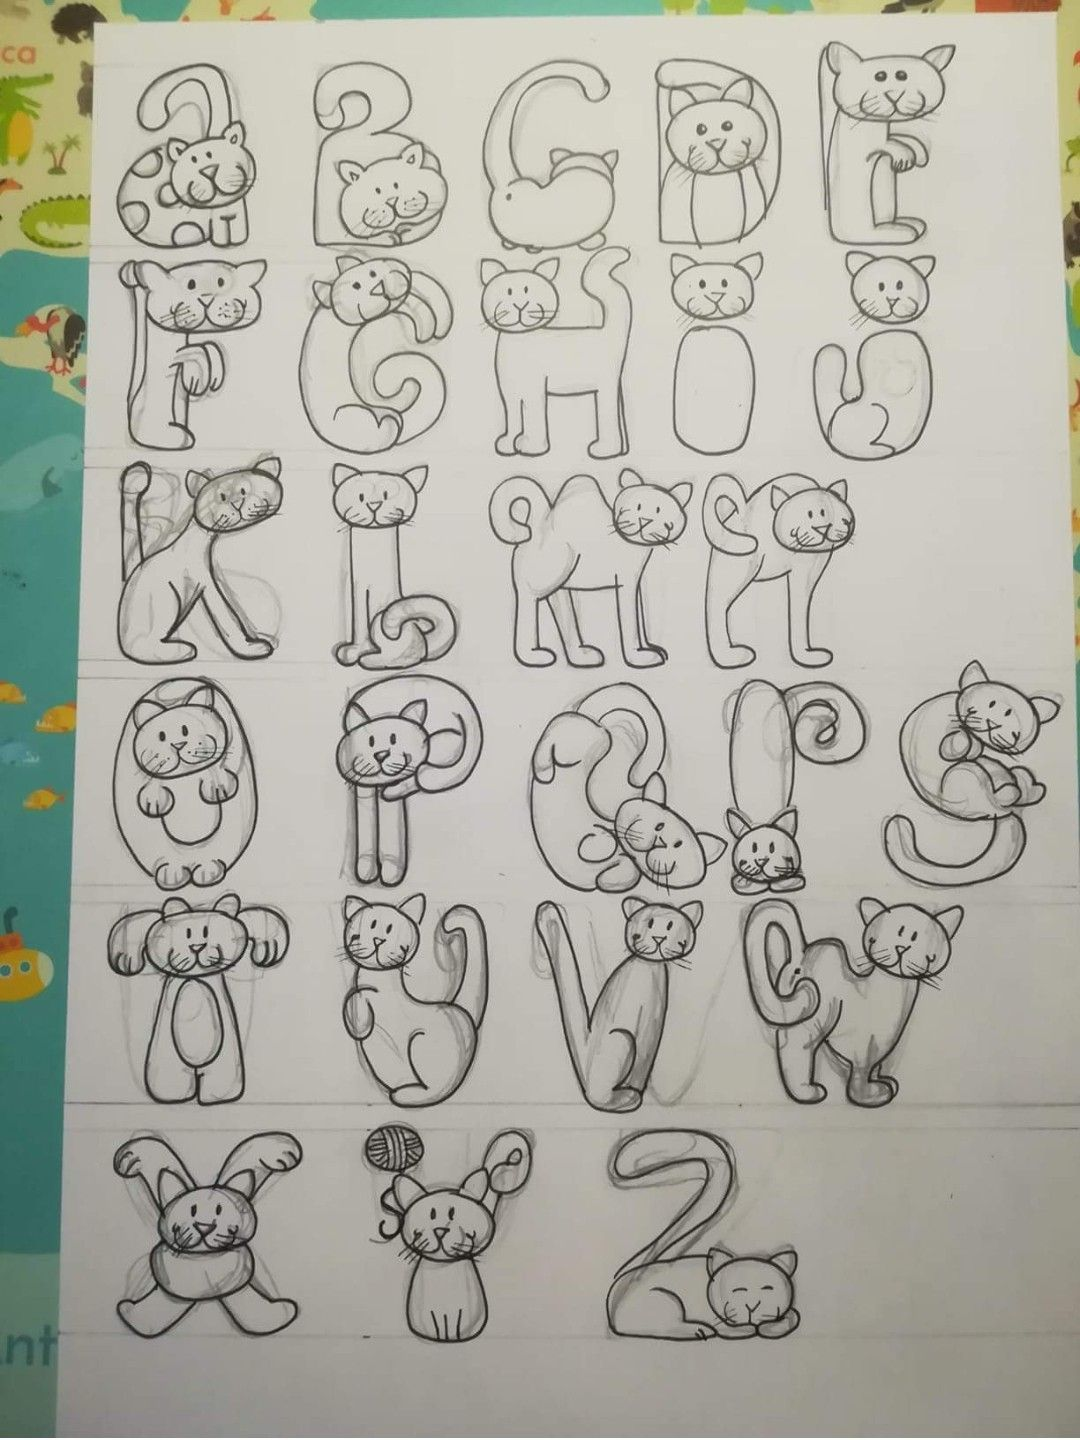 Pin By Veronica On Handlettering Hand Lettering Alphabet Lettering Alphabet Doodle Lettering